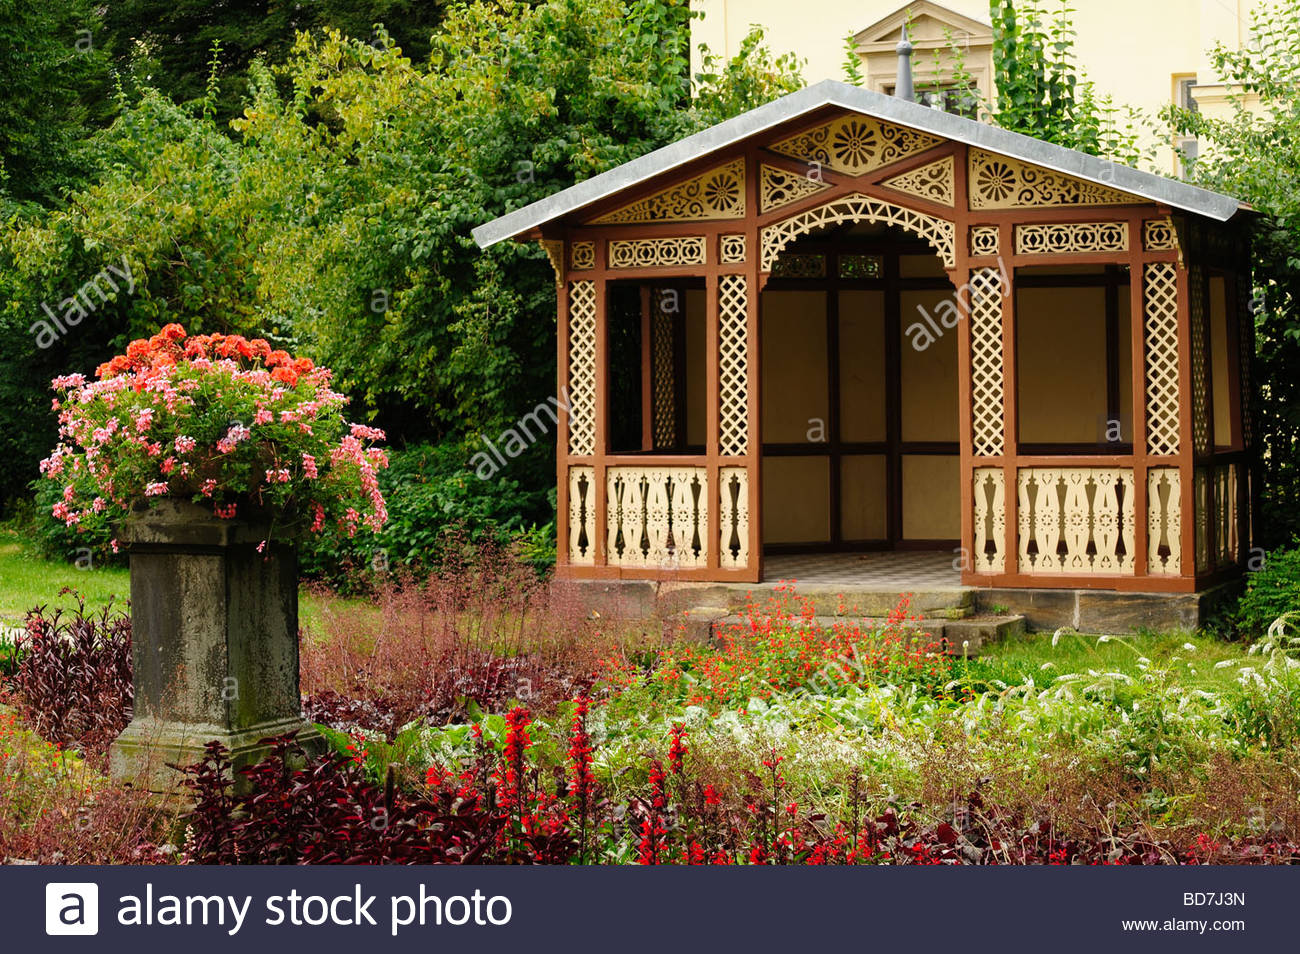 Reuter-Wagner-Museum Saxony, Saxony-Anhalt and Thuringia, Wagner Museum Stock Photos & Wagner Museum Stock Images - Alamy